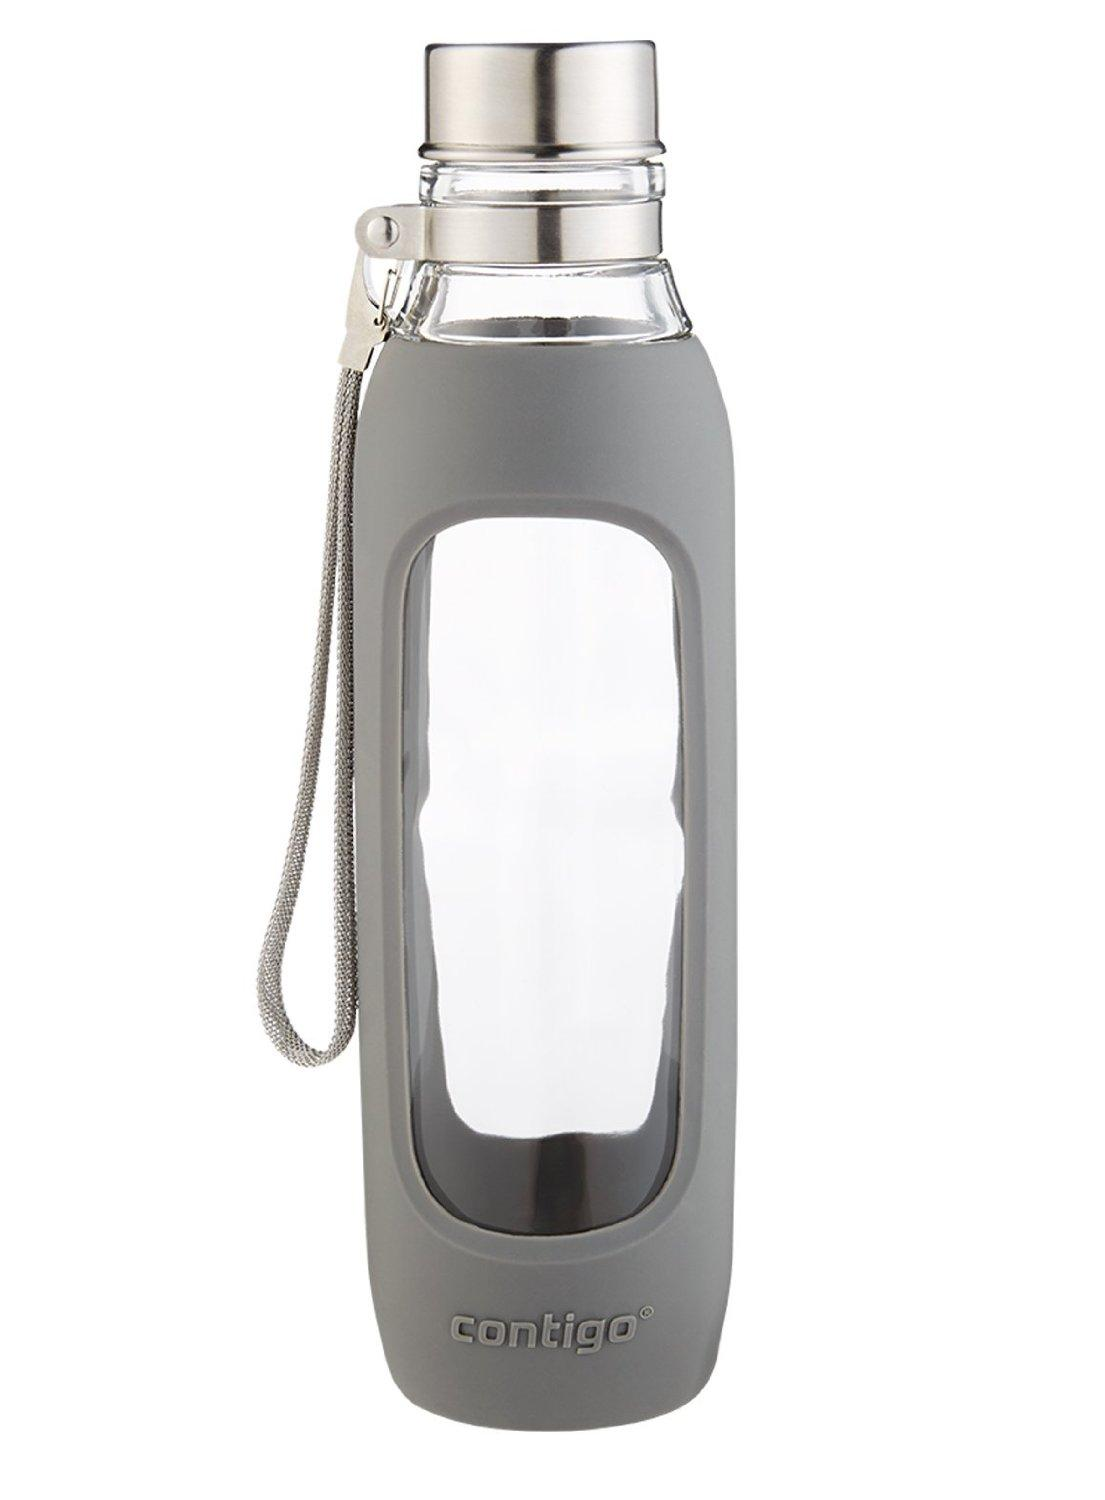 Contigo Purity Glass Water Bottle, 20-Ounce